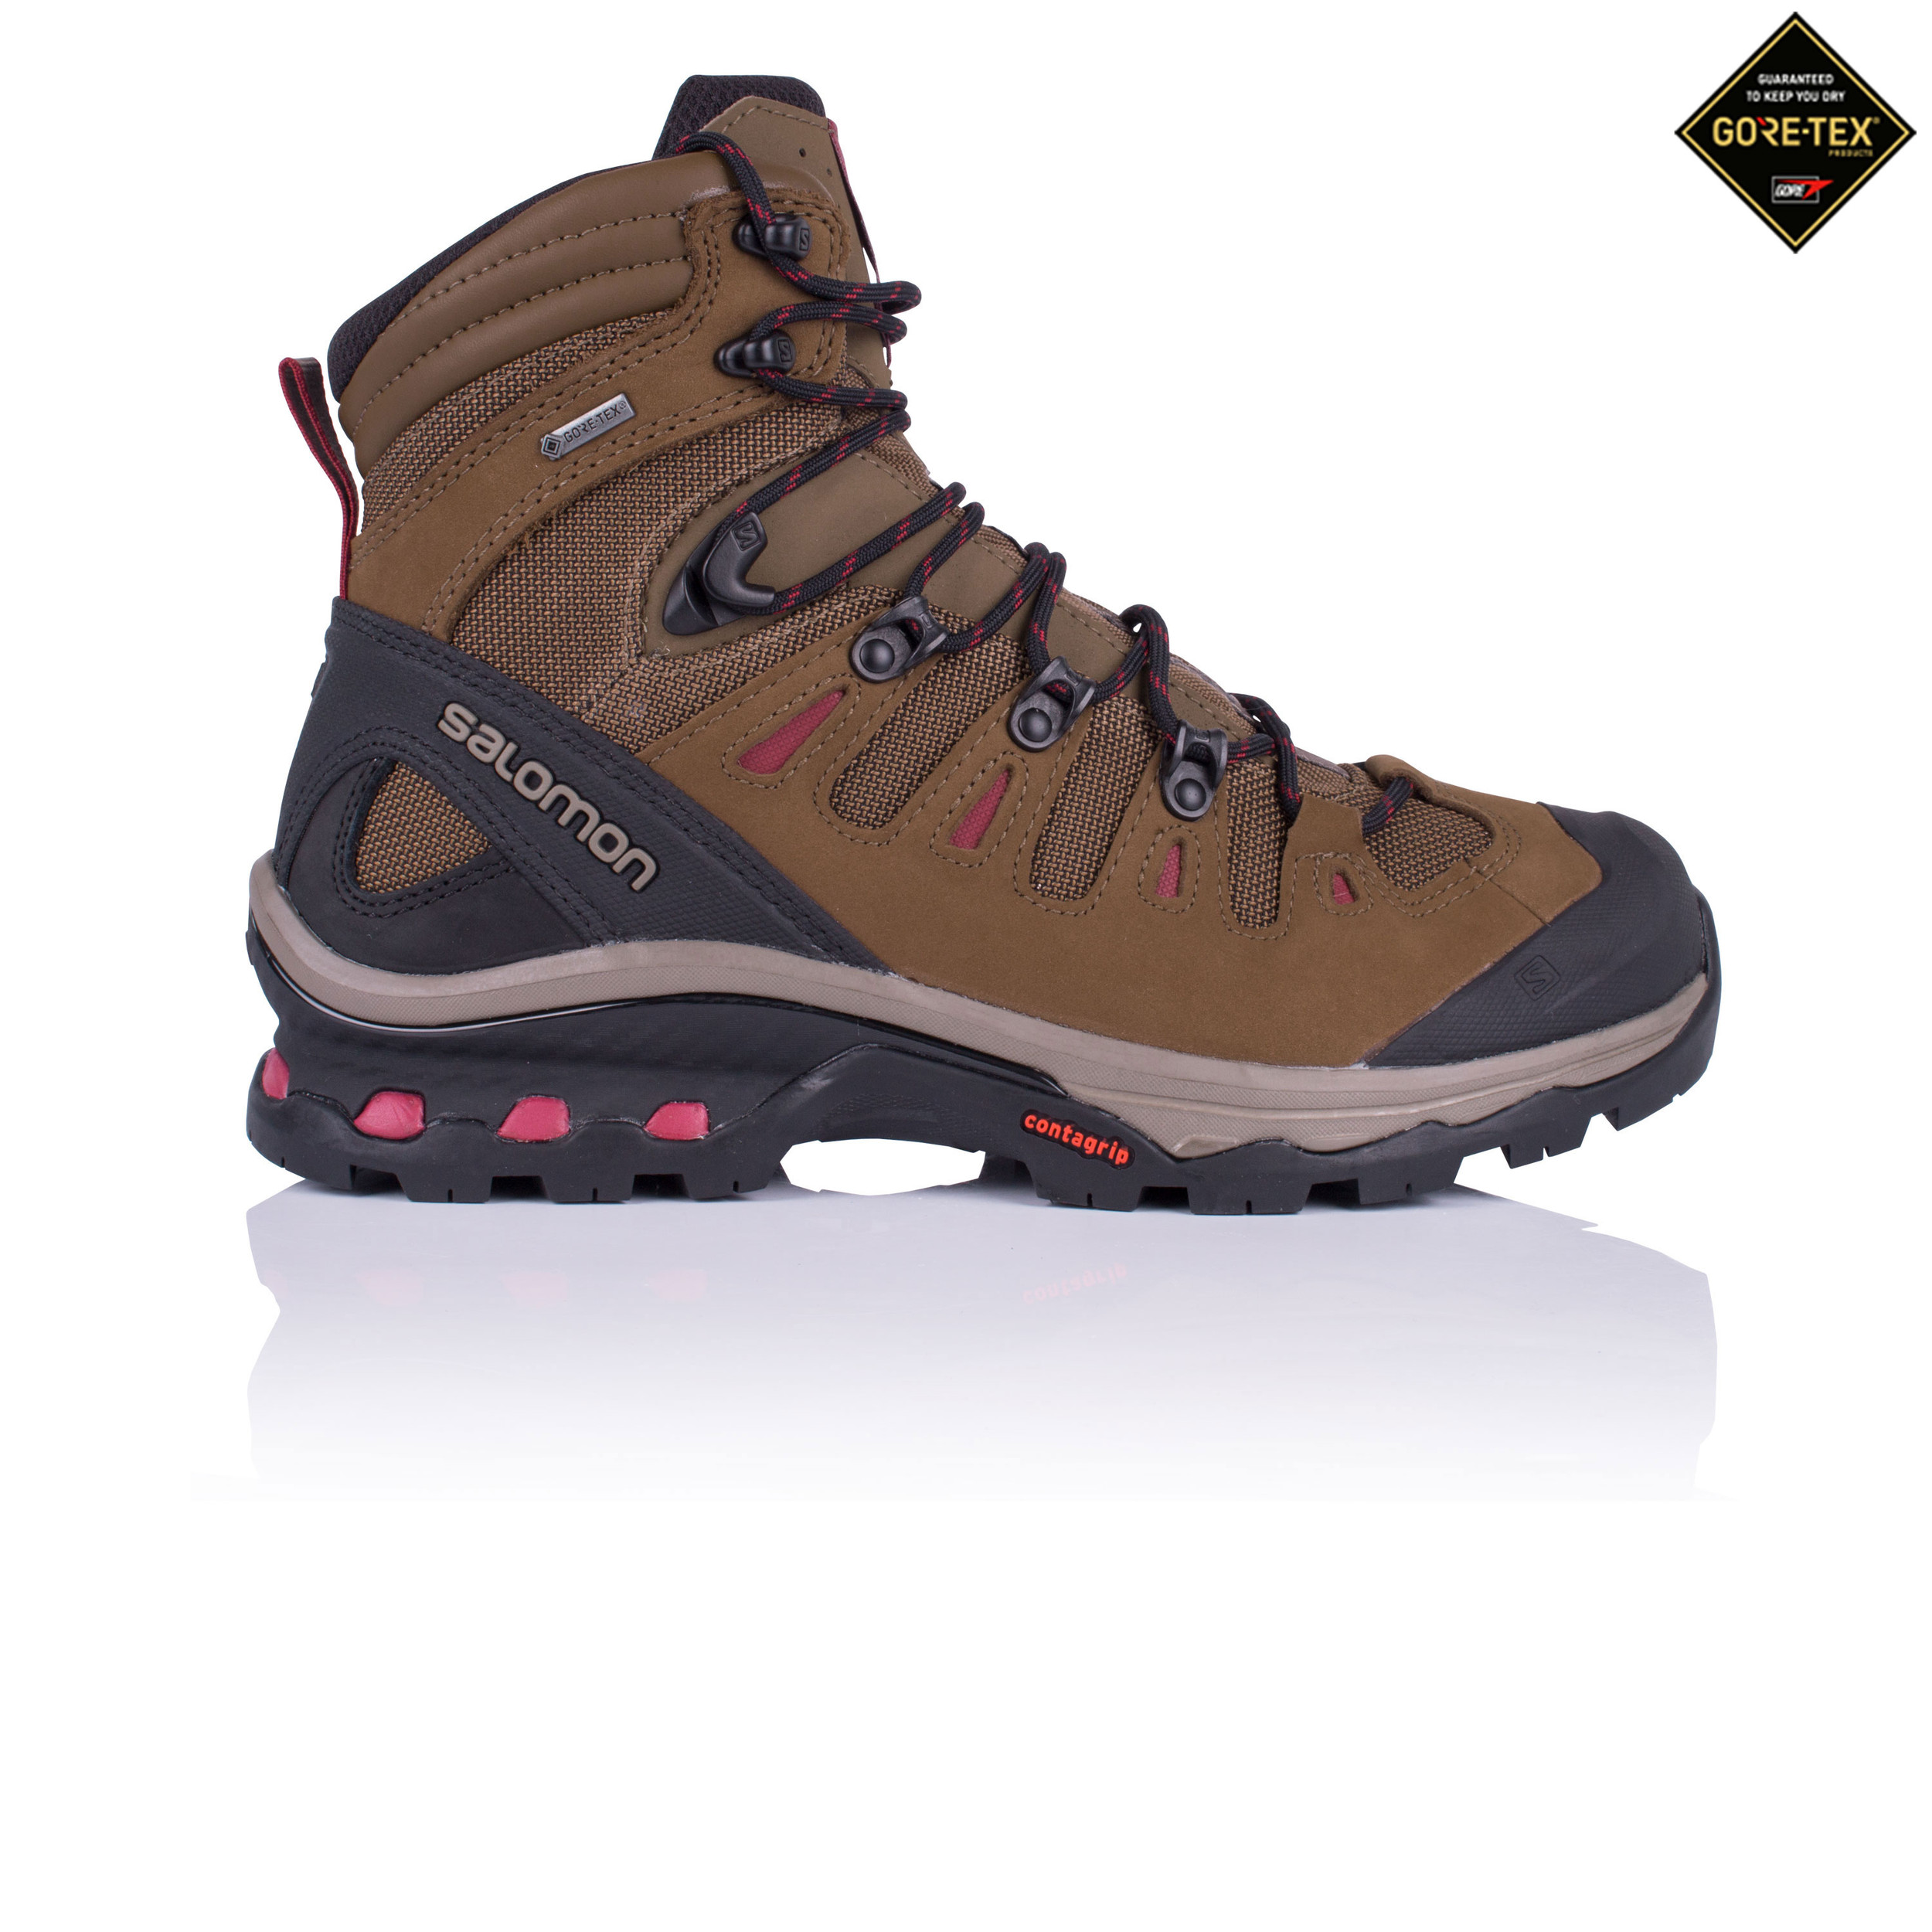 bdf65391c5b Details about Salomon Womens Quest 4D 3 GTX Walking Boots Brown Sports  Outdoors Waterproof